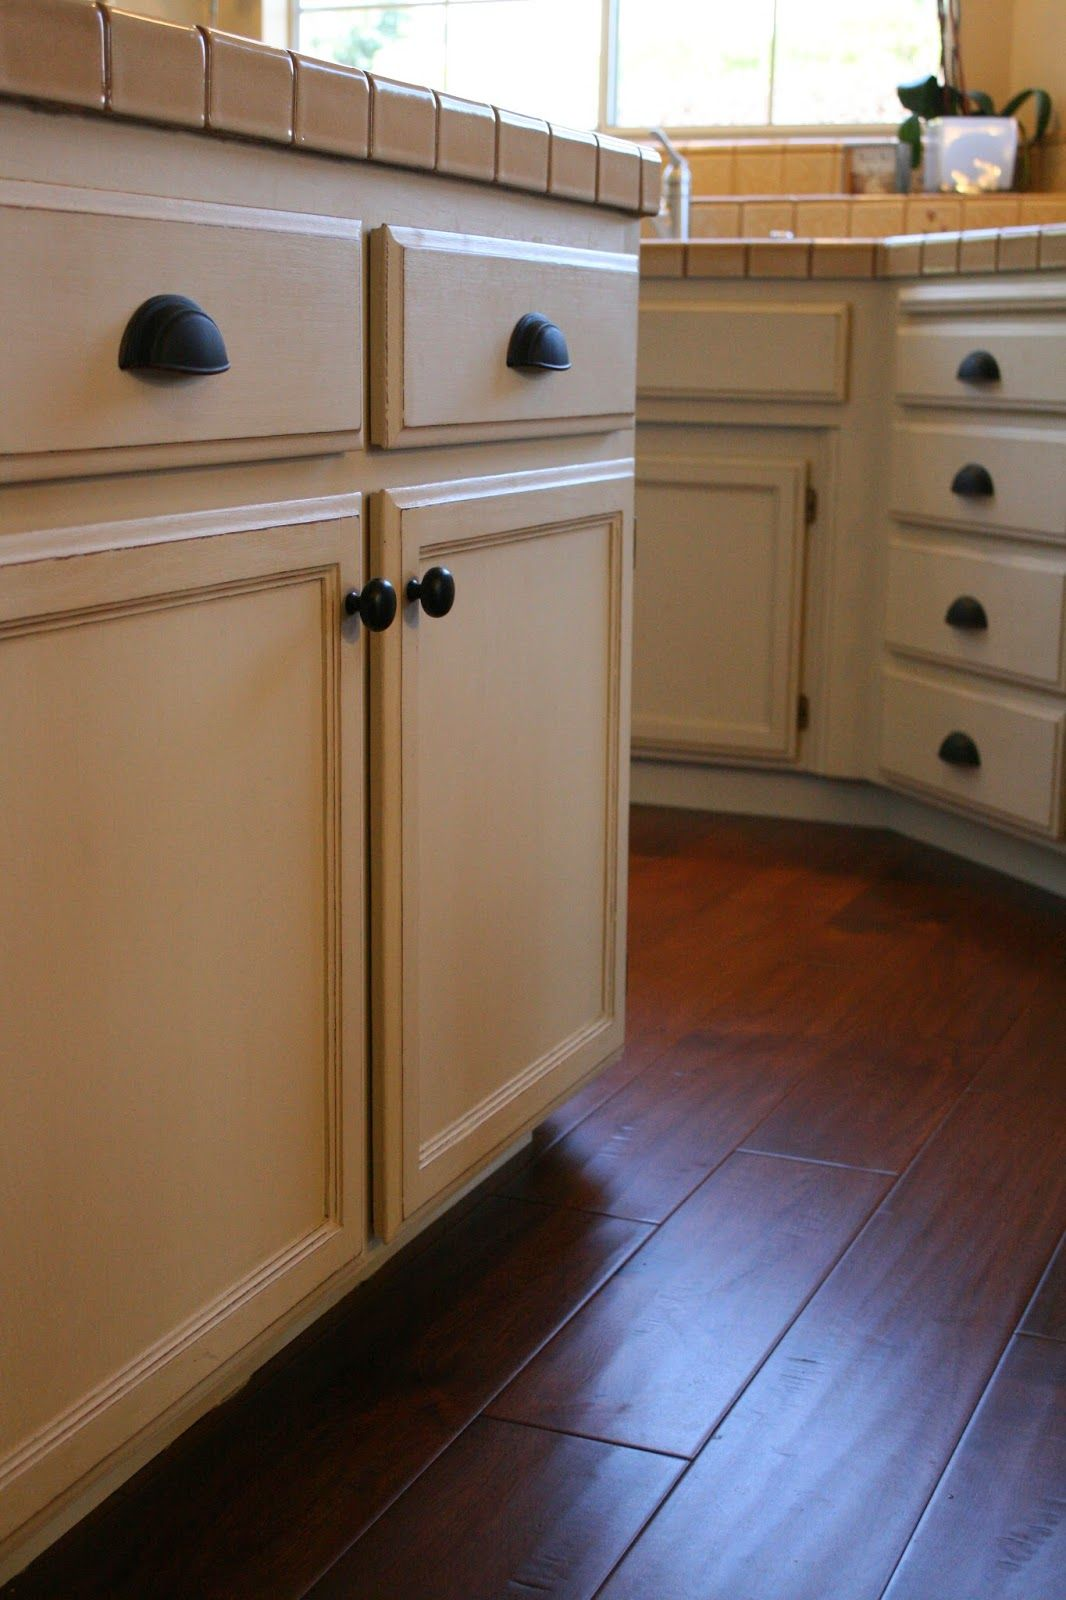 Reloved Rubbish Chalk Paint Transformation On Oak Kitchen Cabinets Old Ochre Color Redo Kitchen Cabinets Oak Cabinets Kitchen Cabinets